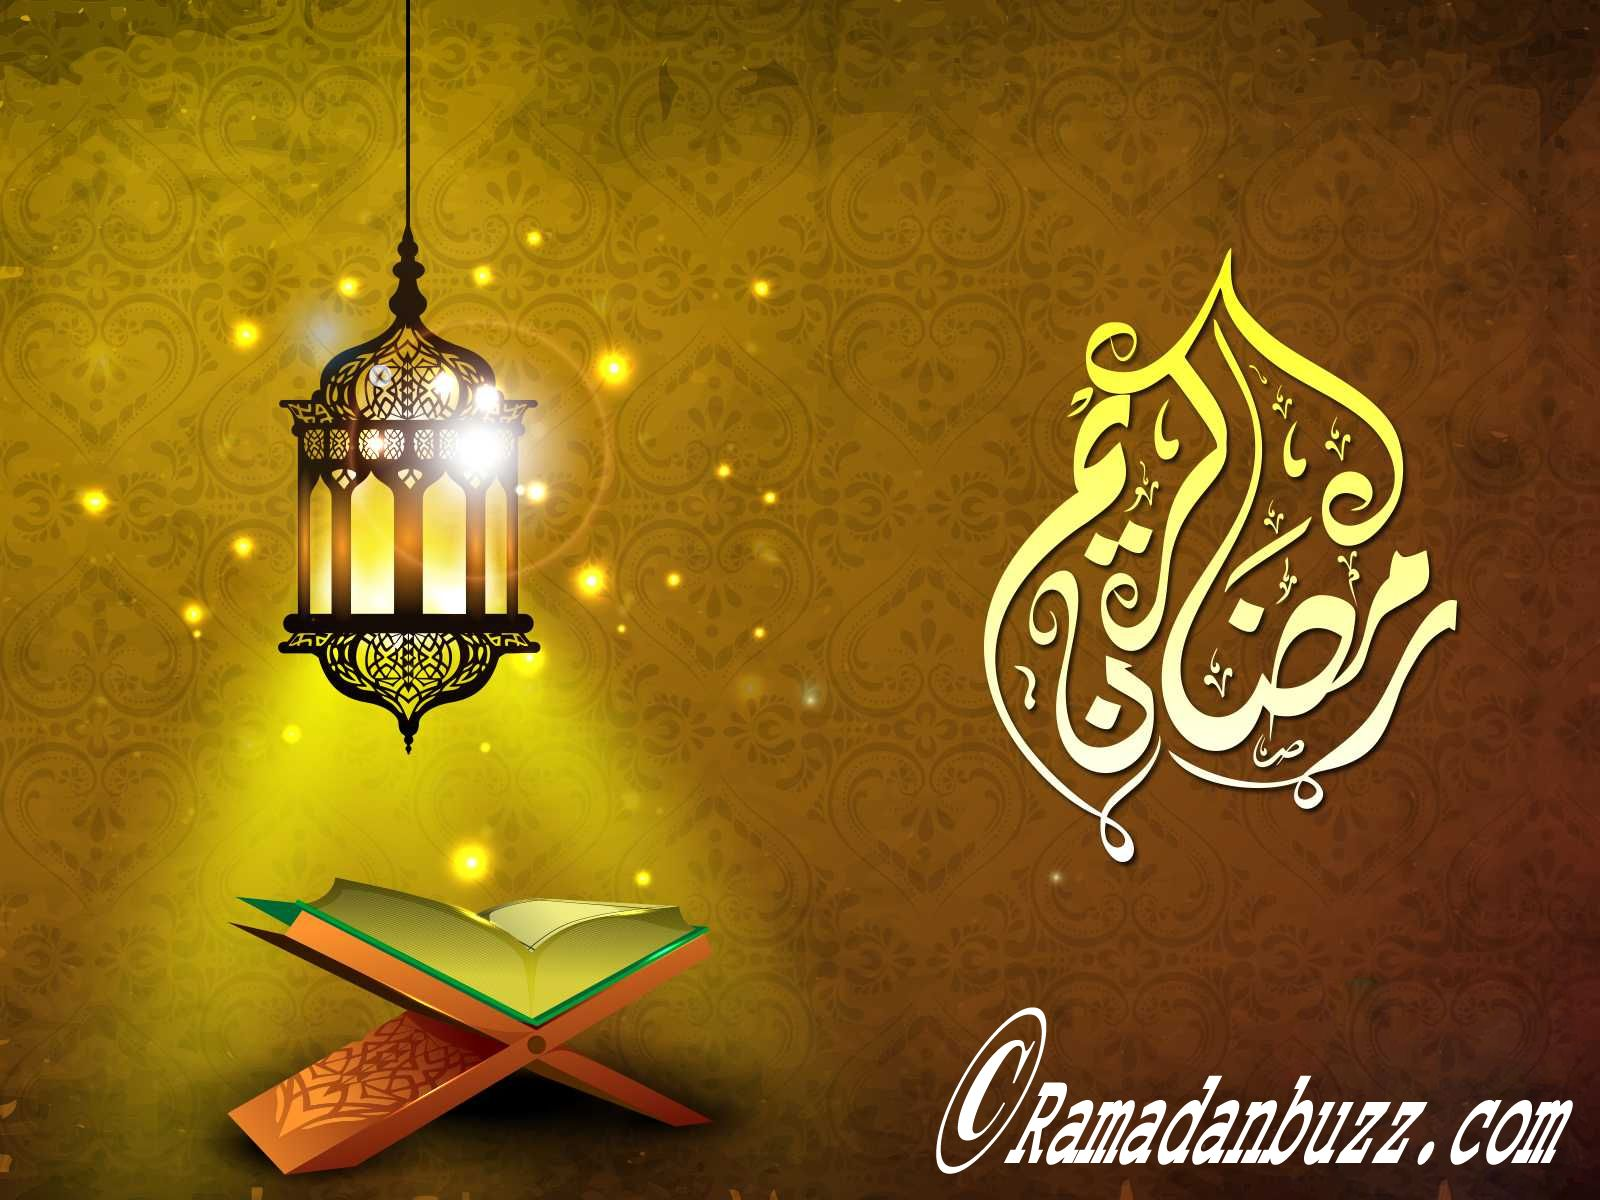 Ramadan Images Wallpapers Hd Ramzan Images 2020 Ramadan Images